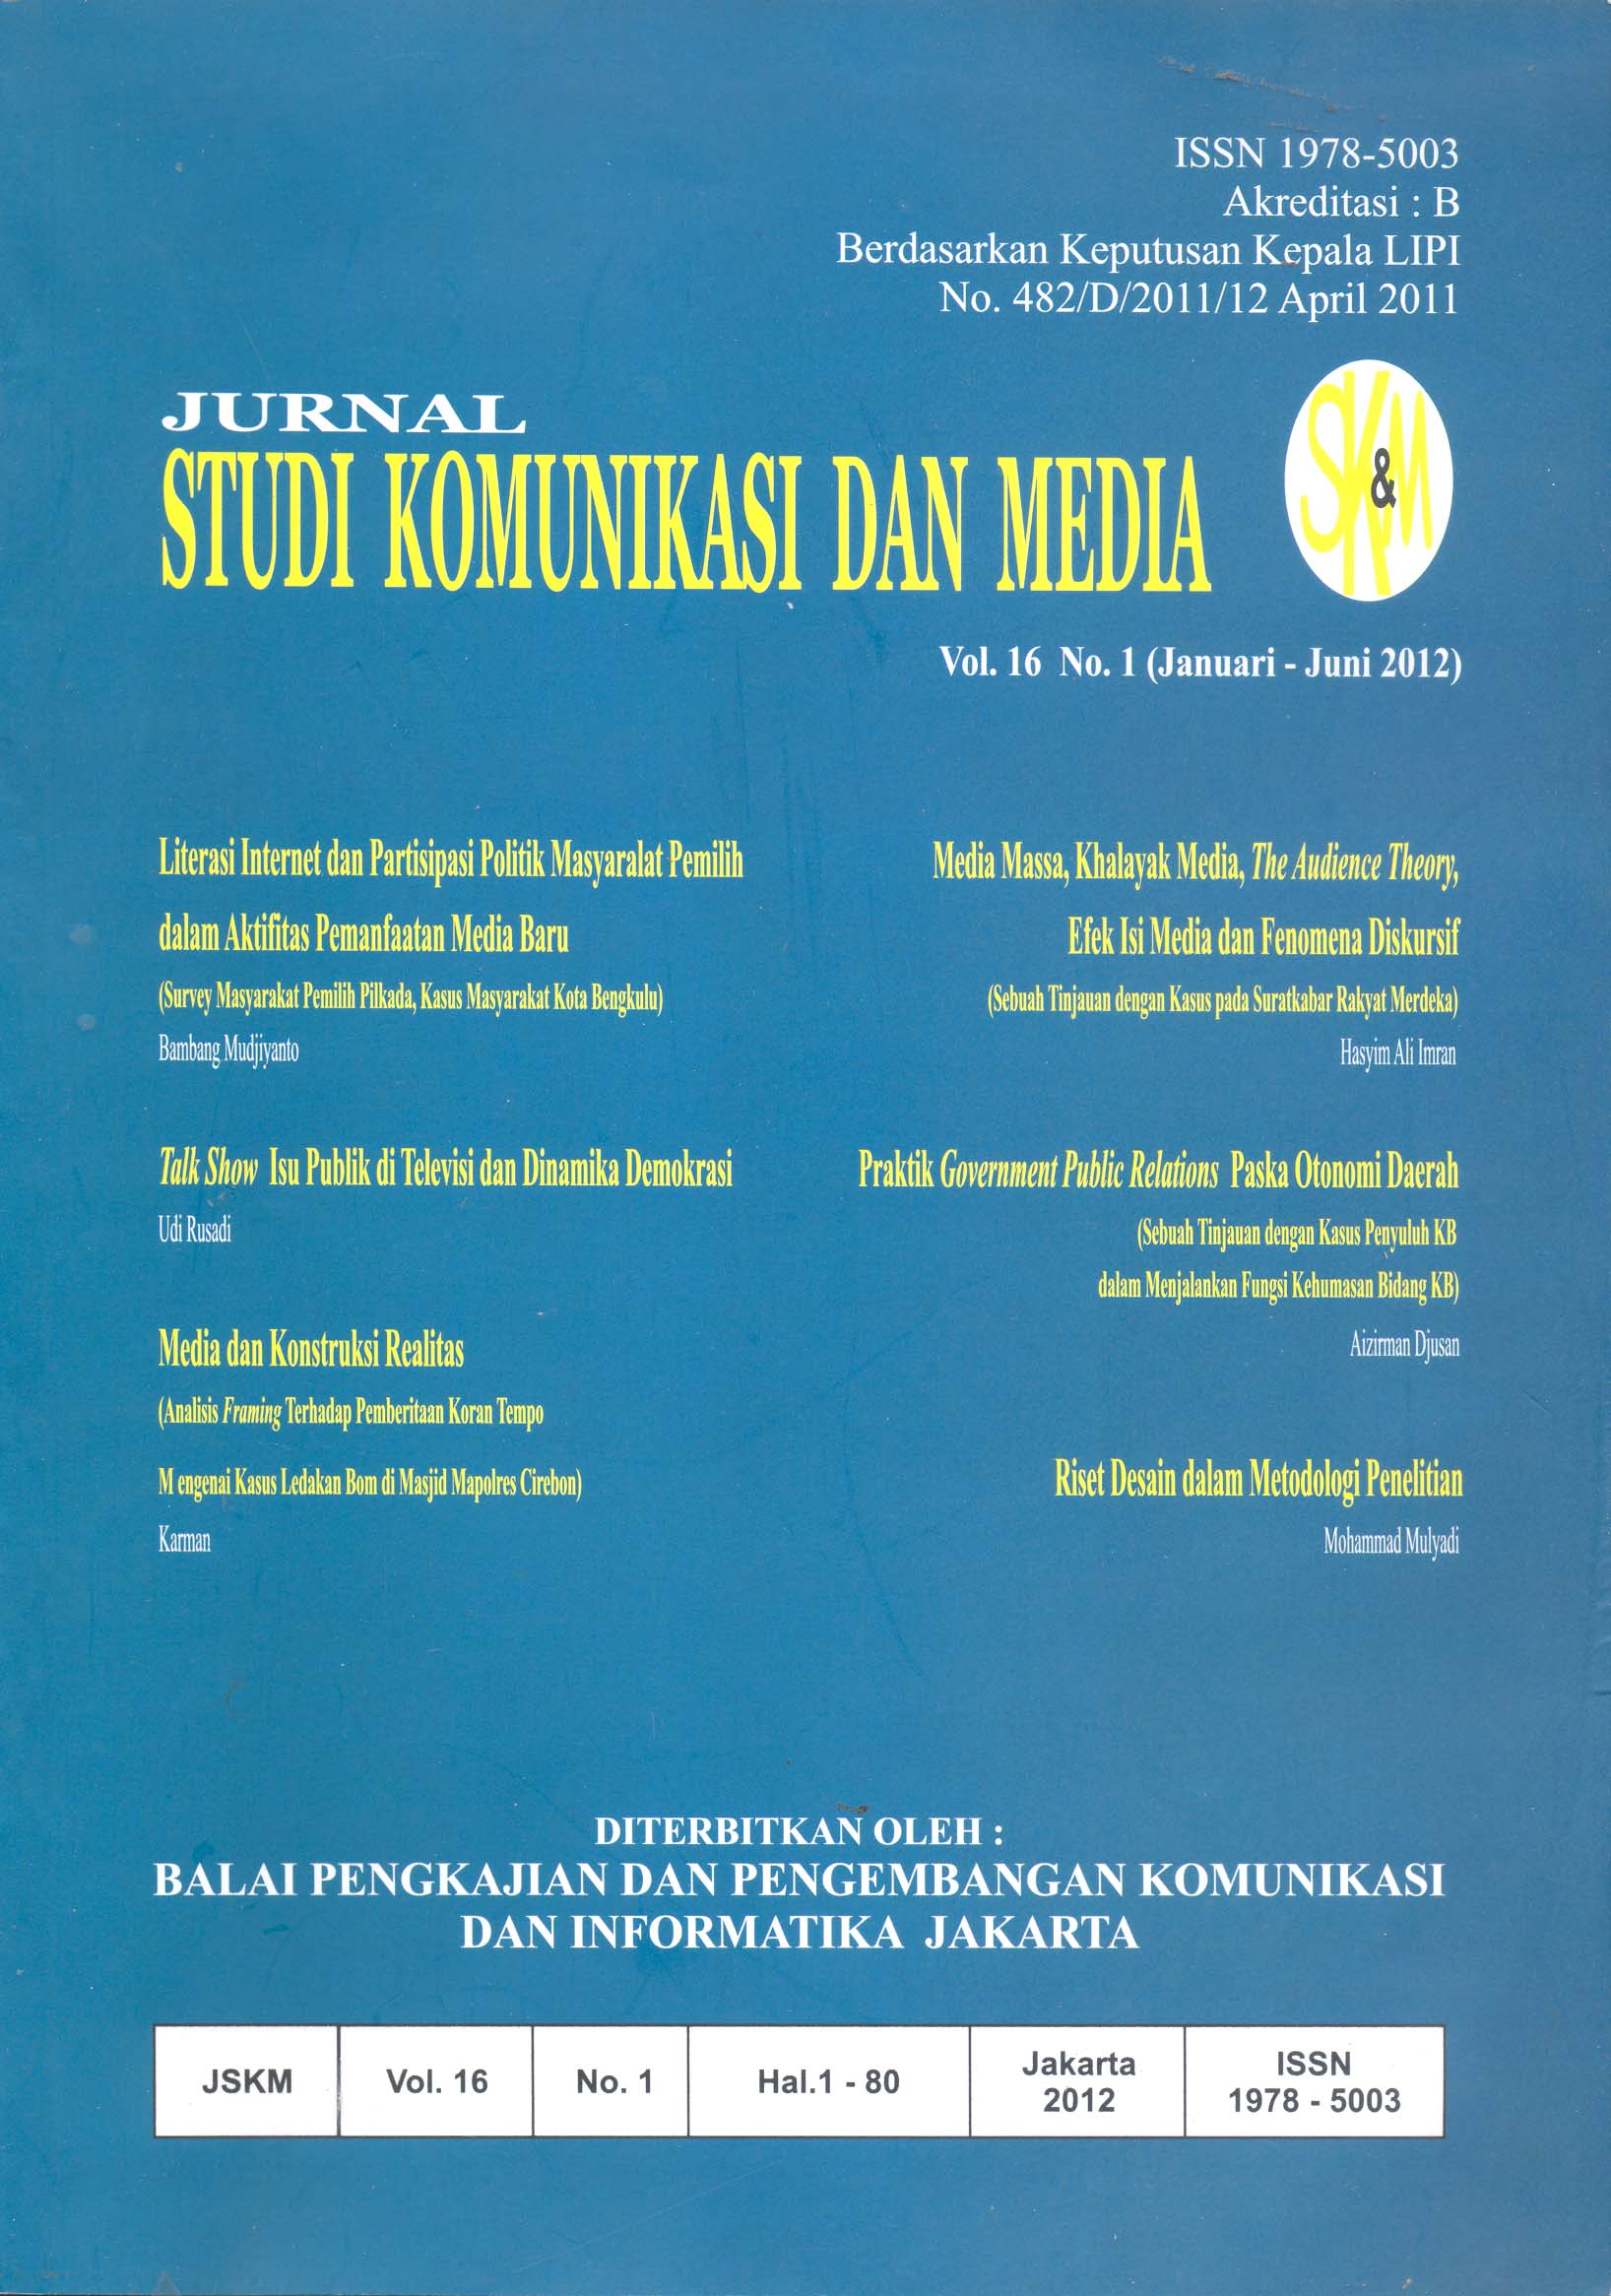 Jurnal Studi Komunikasi dan Media